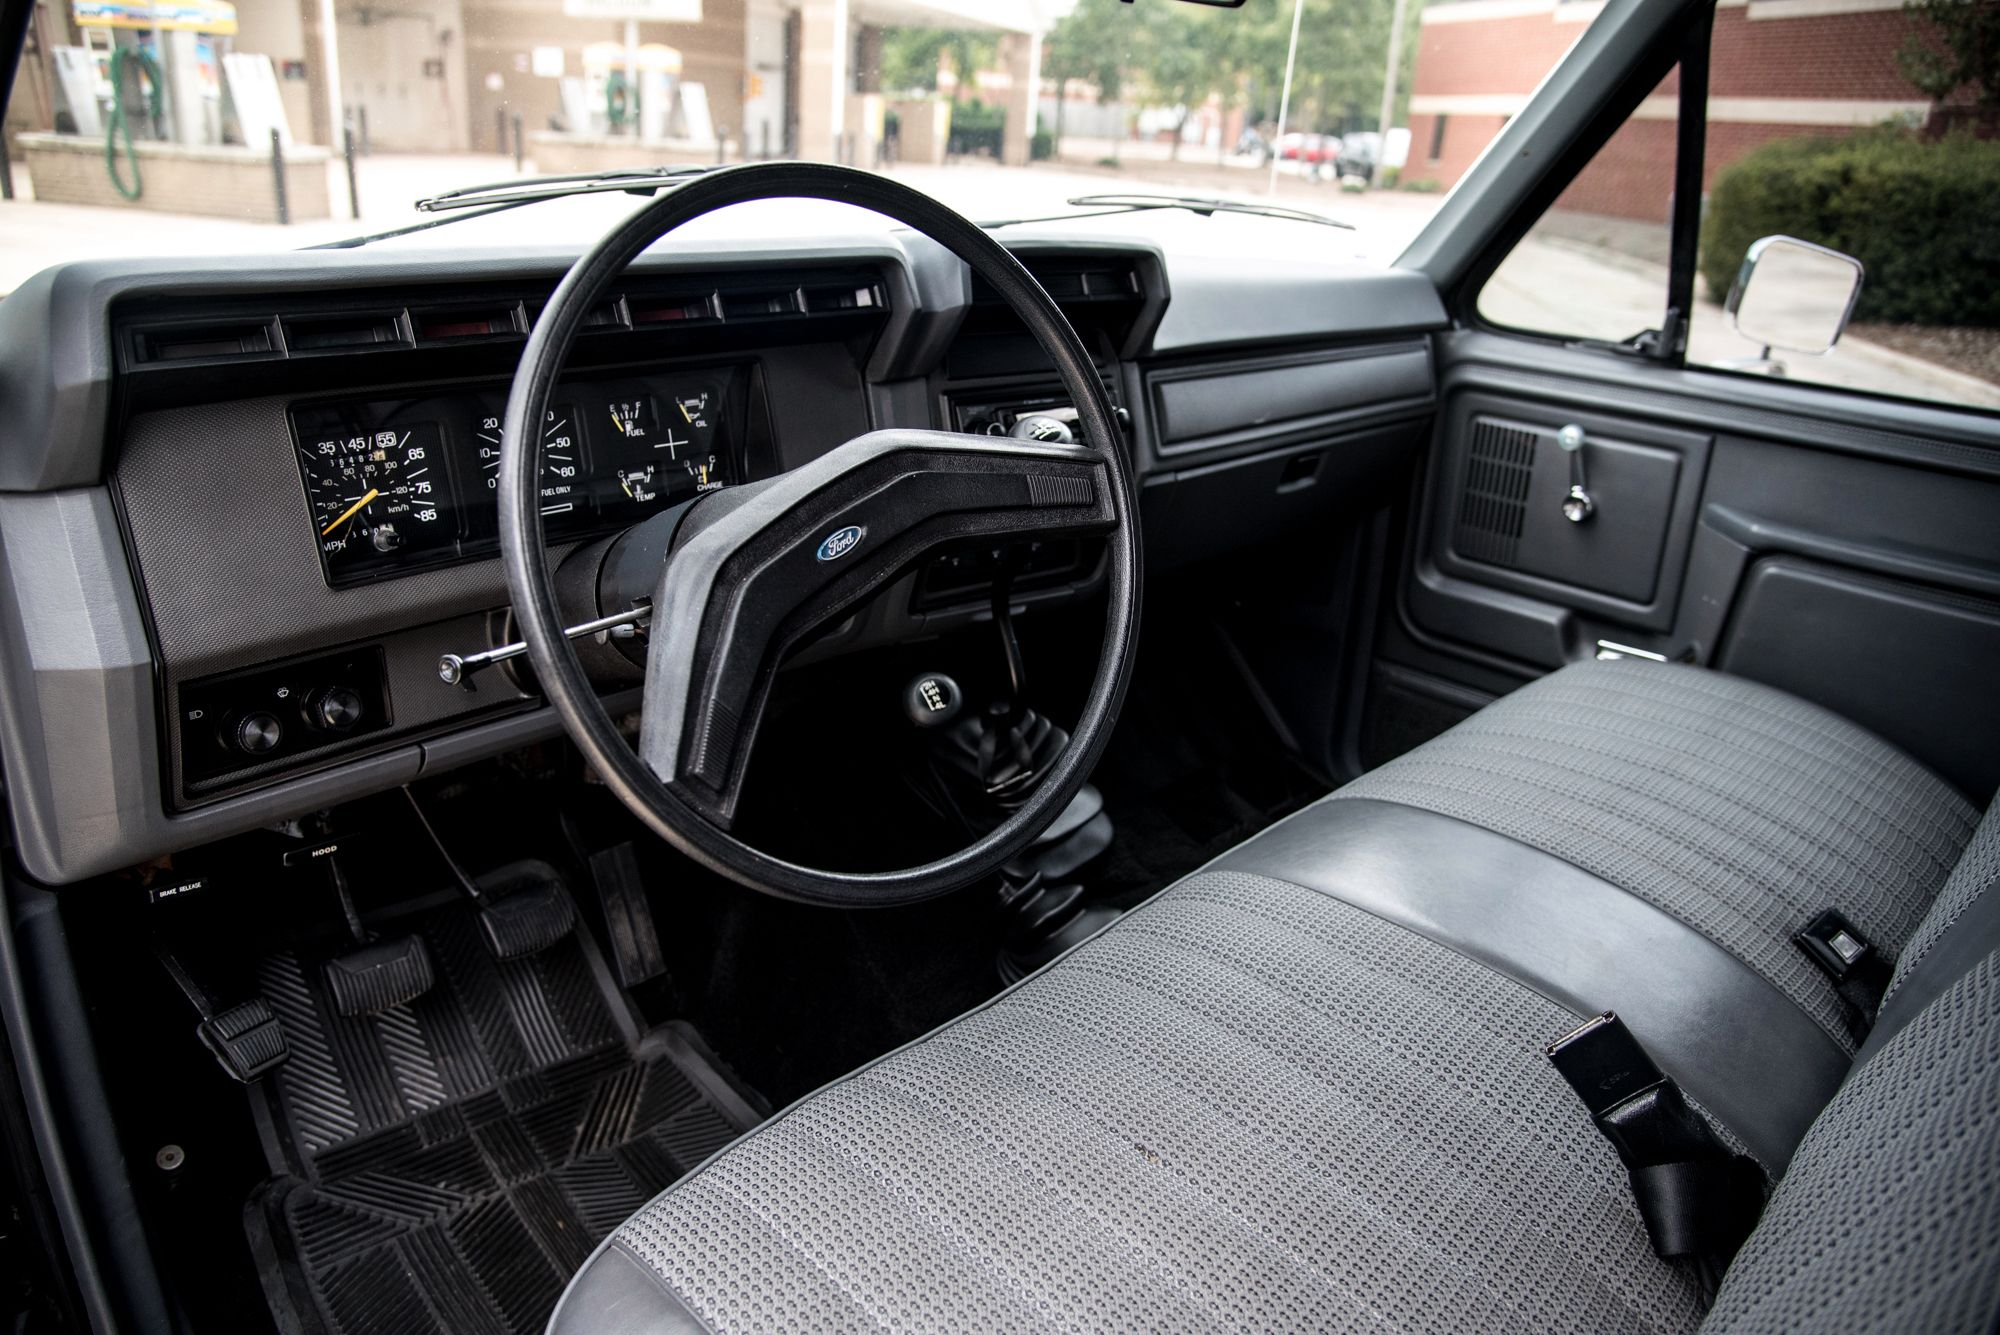 1985 Ford F 150 4x4 Flareside 4 Speed In 2020 Ford F150 Ford Pickup Trucks Ford F150 Interior